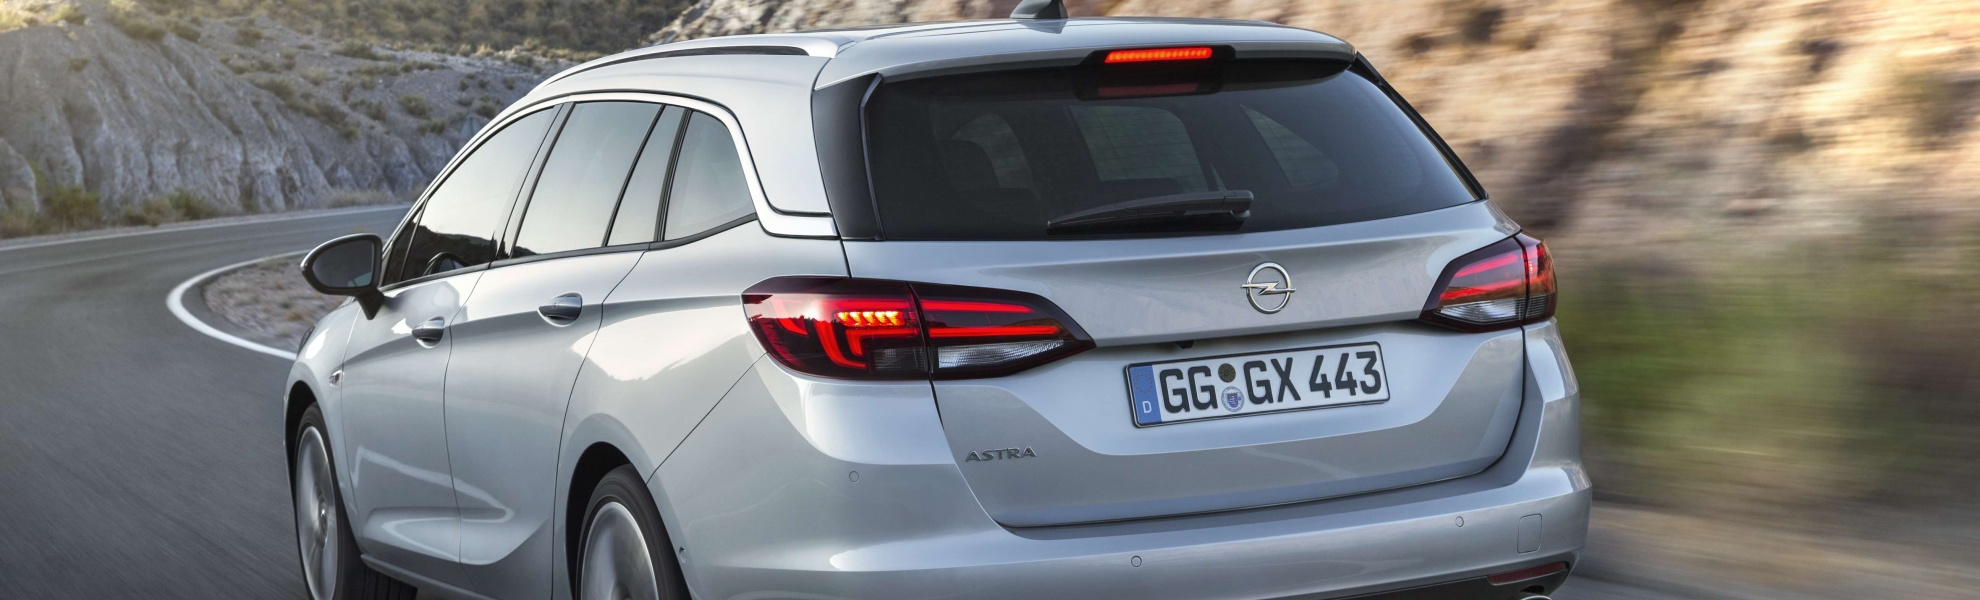 Opel-Astra-Sports-Tourer-297397.jpg